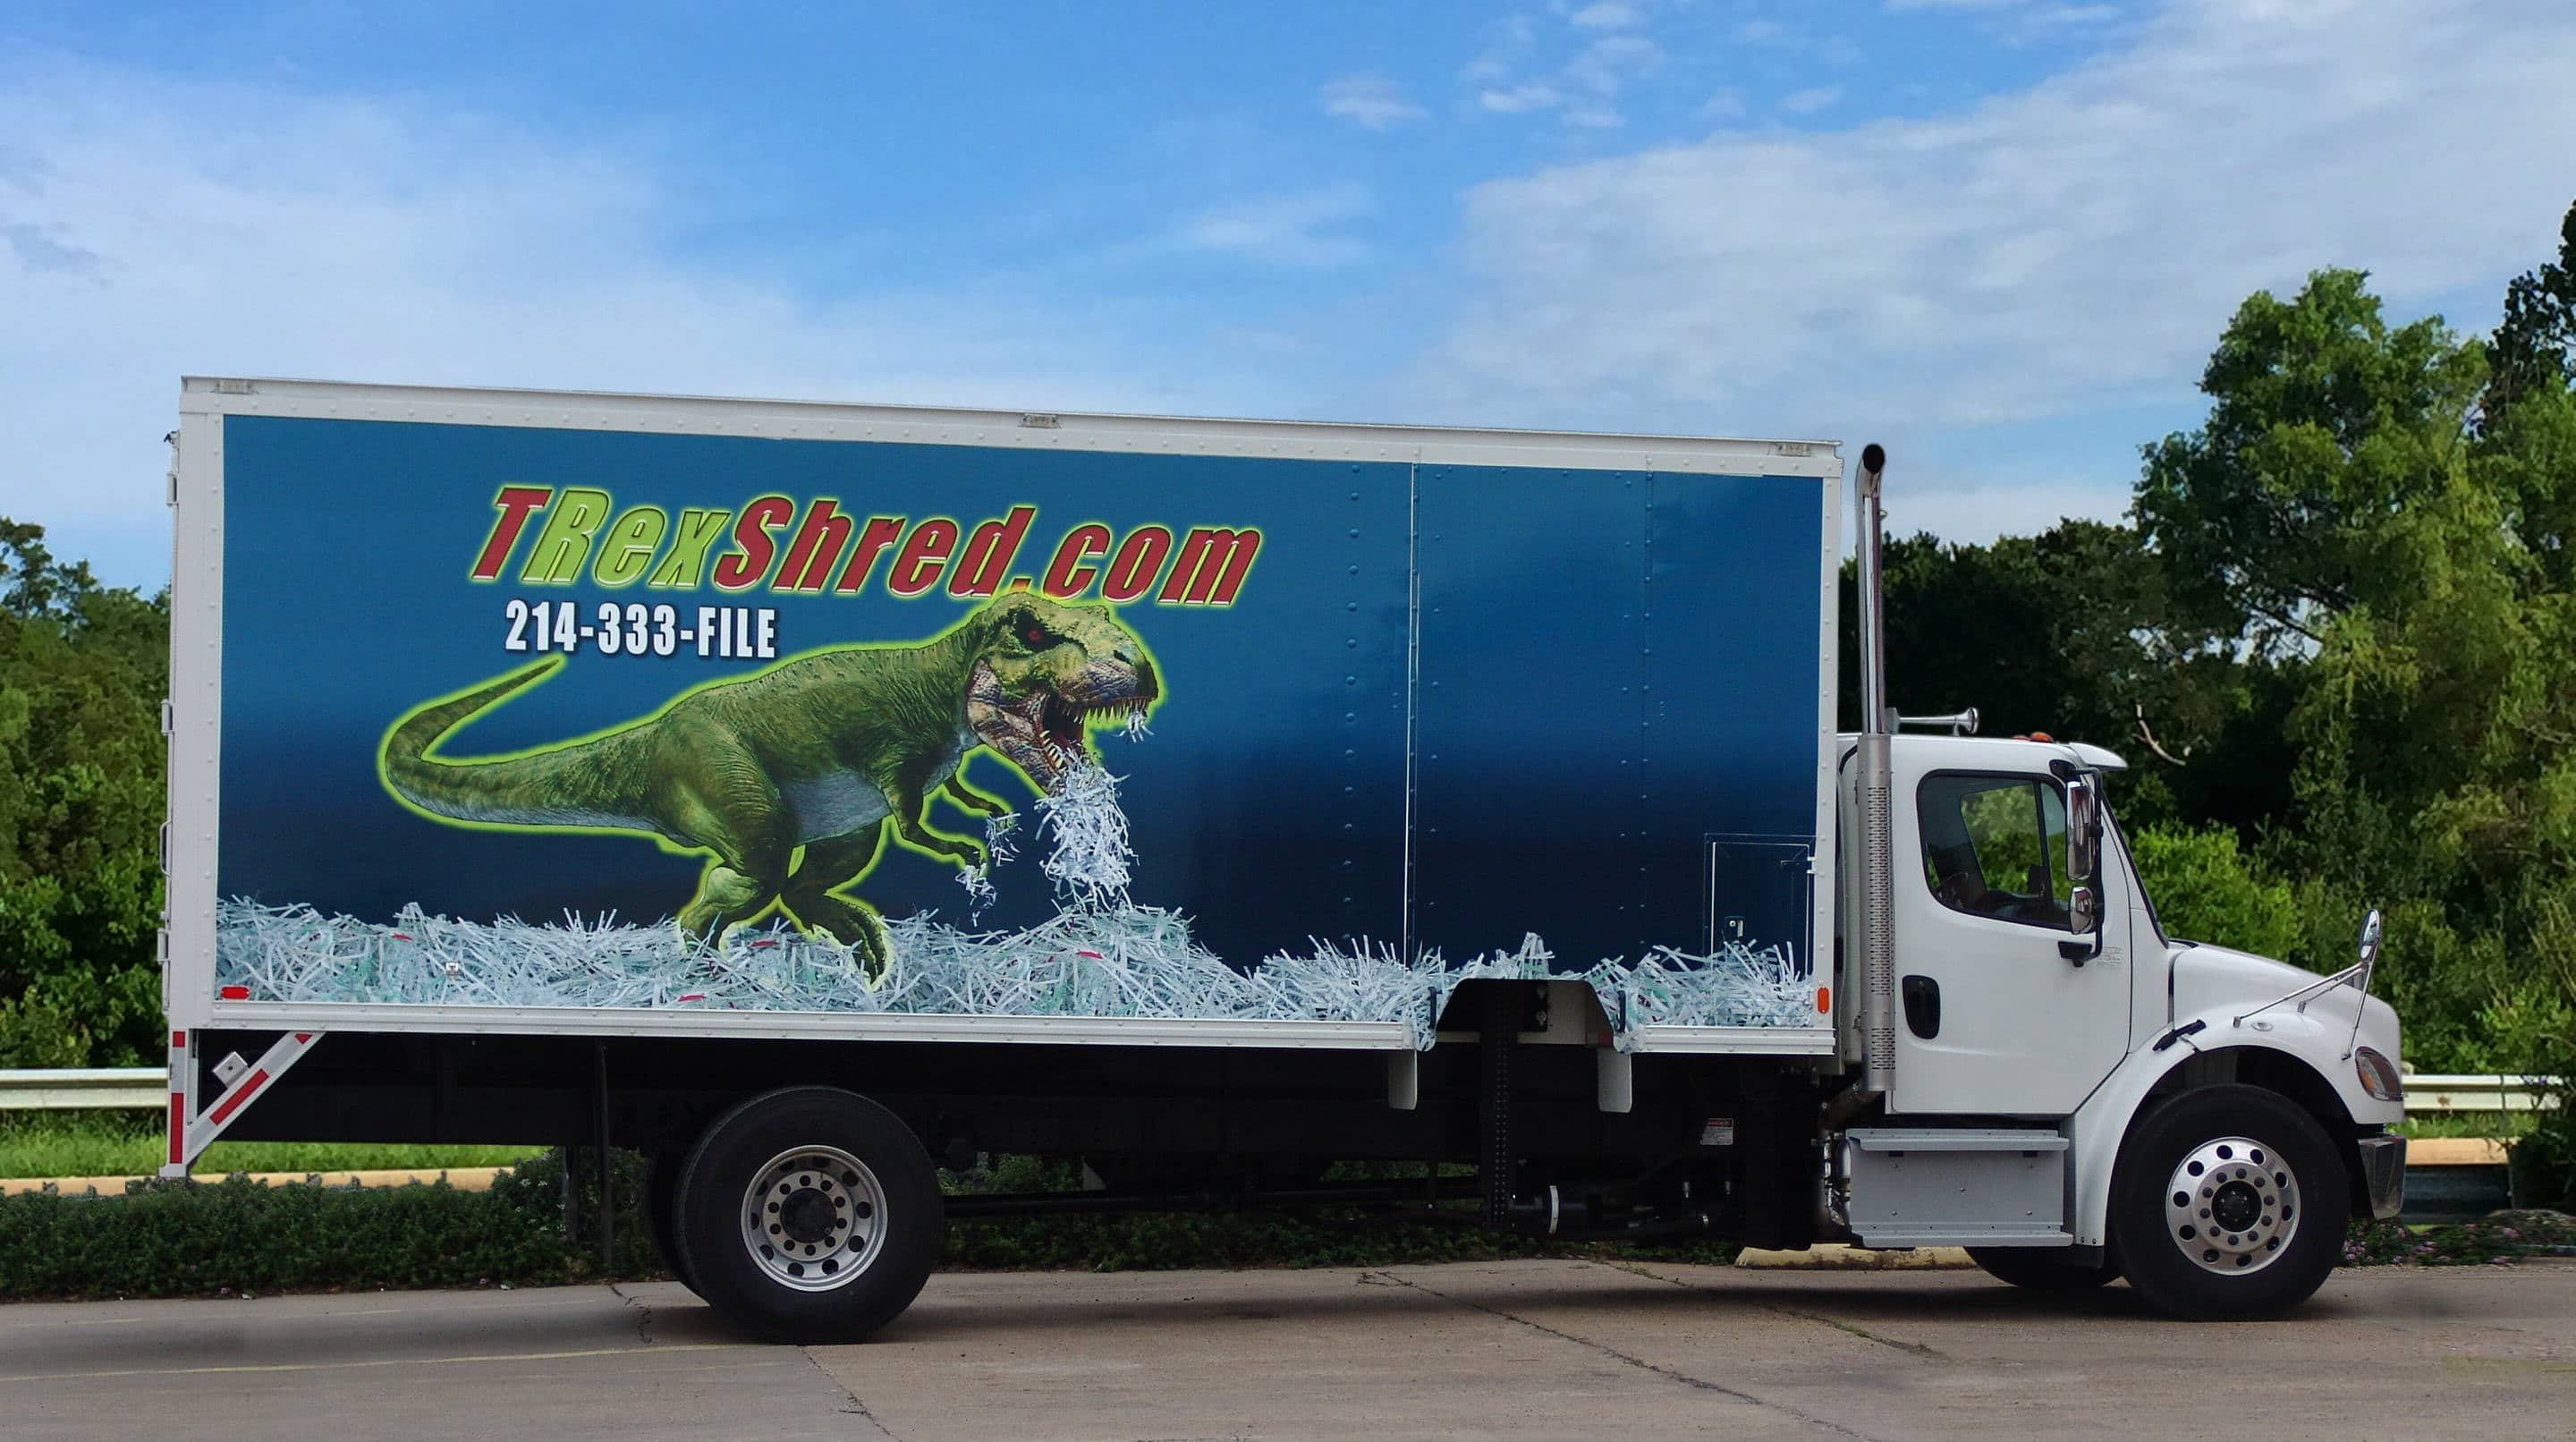 TRex shredding truck